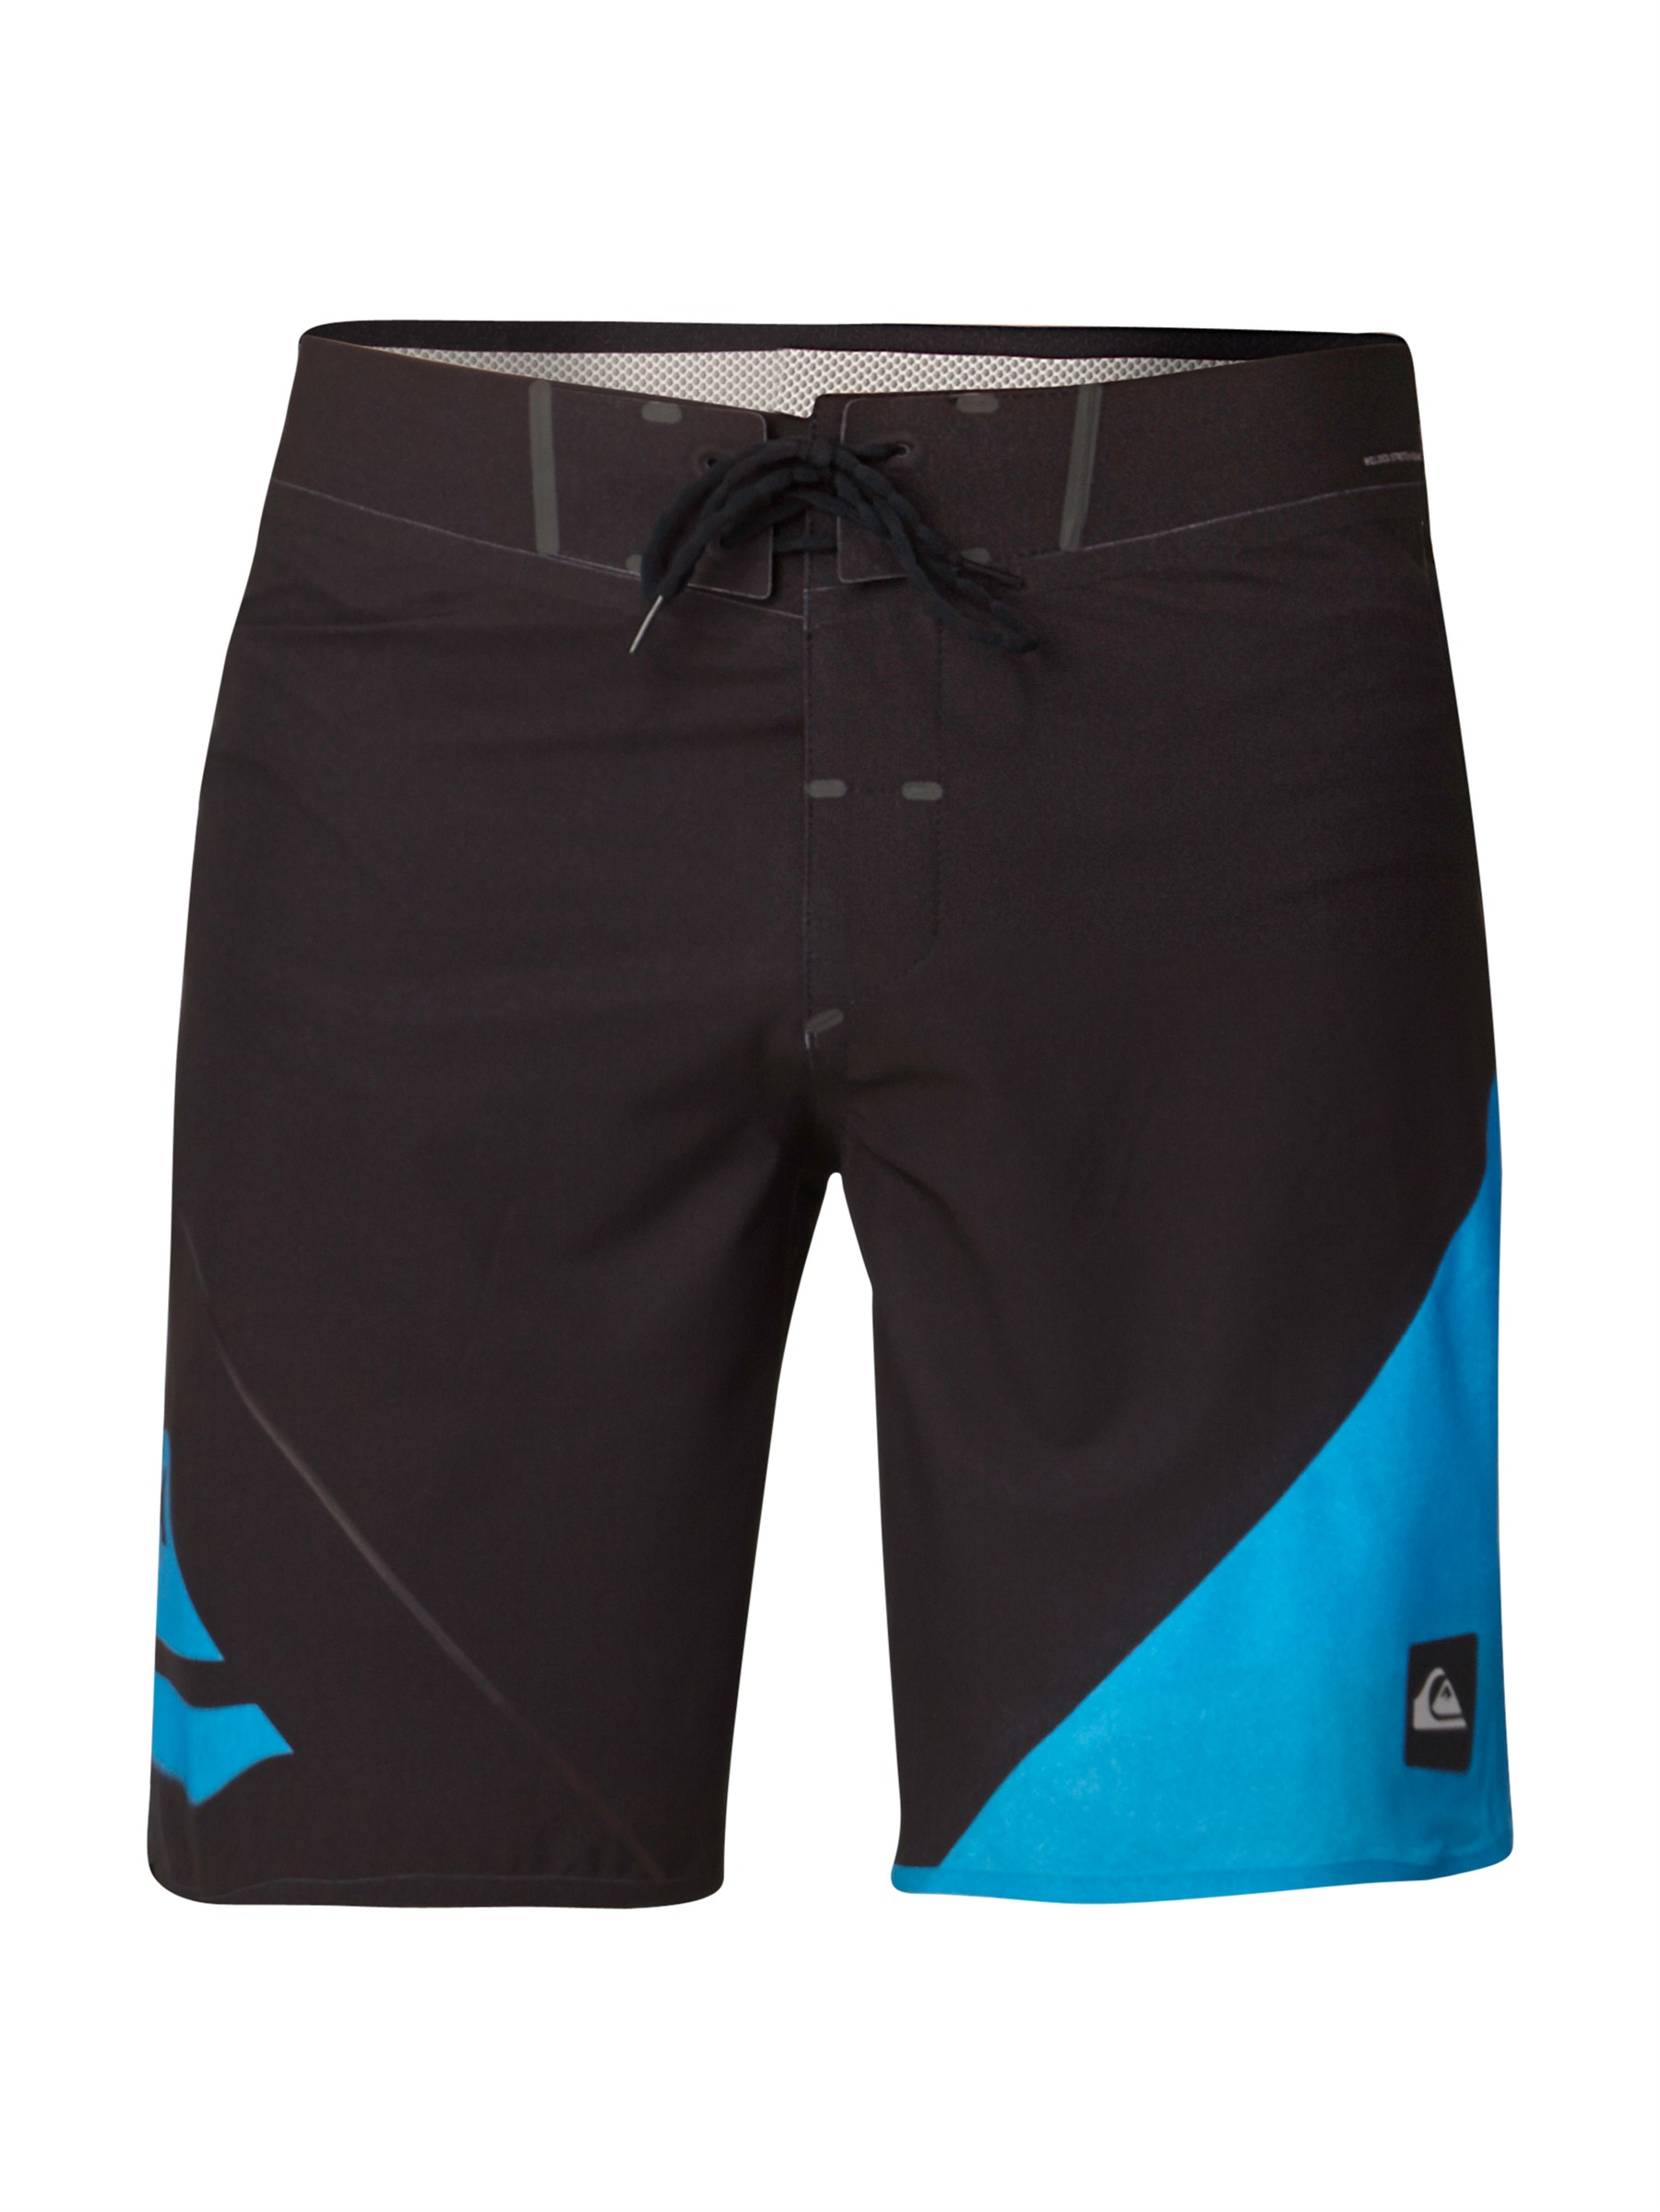 baff52a1d0 Why Quiksilver's AG47 Are The Most Technologically Advanced Swim Trunks,  Ever